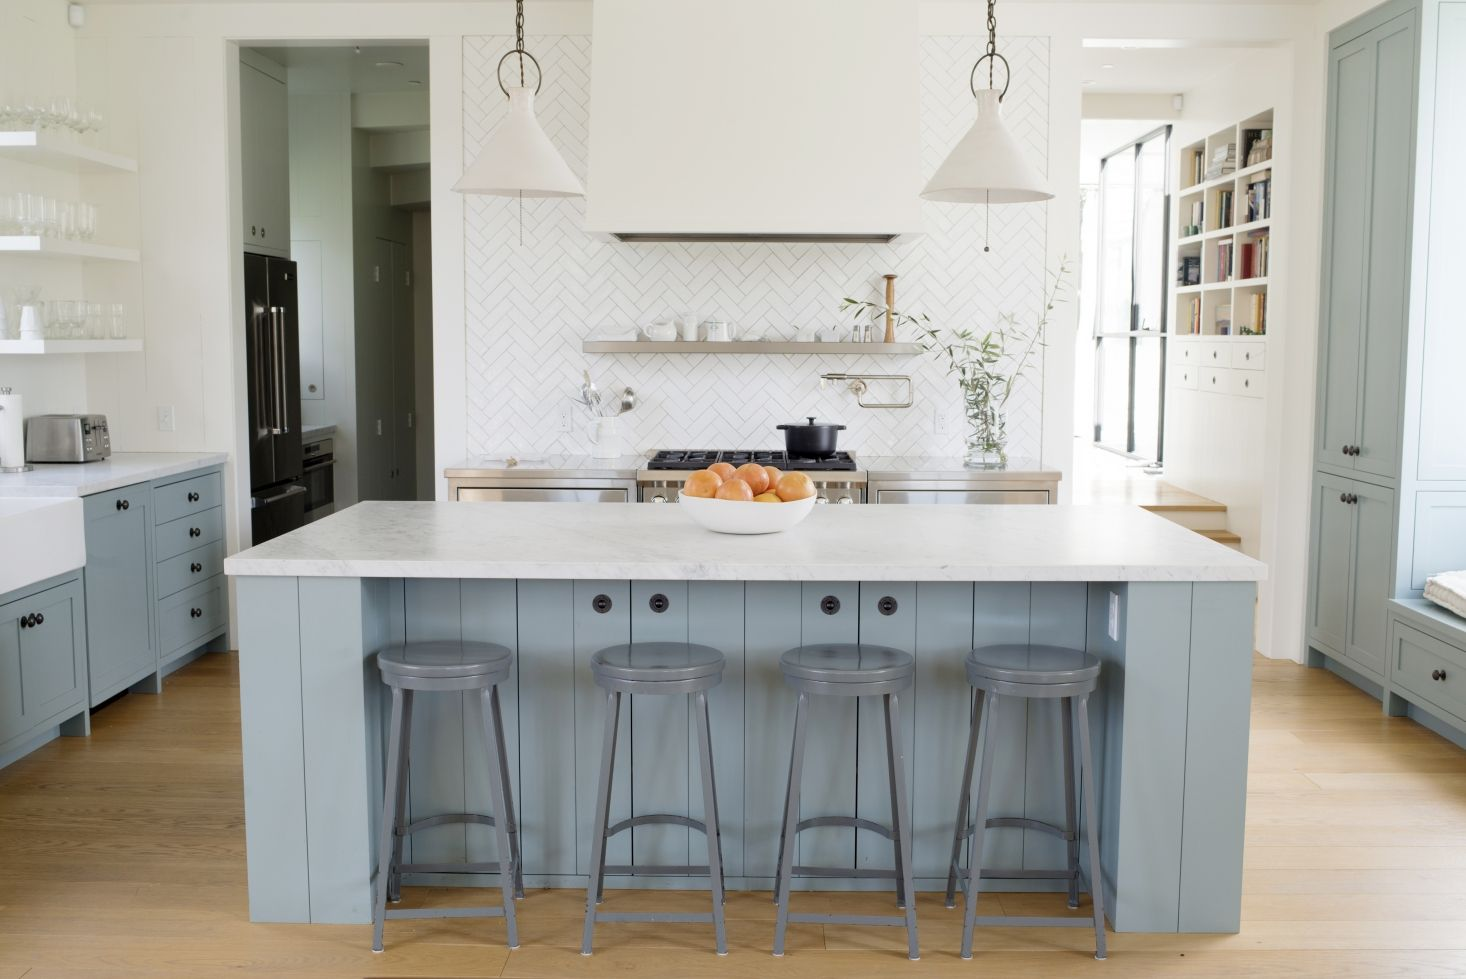 Kitchen Of The Week: A New Build Kitchen In Mill Valley, CA, The Six Month  Check Up   Remodelista